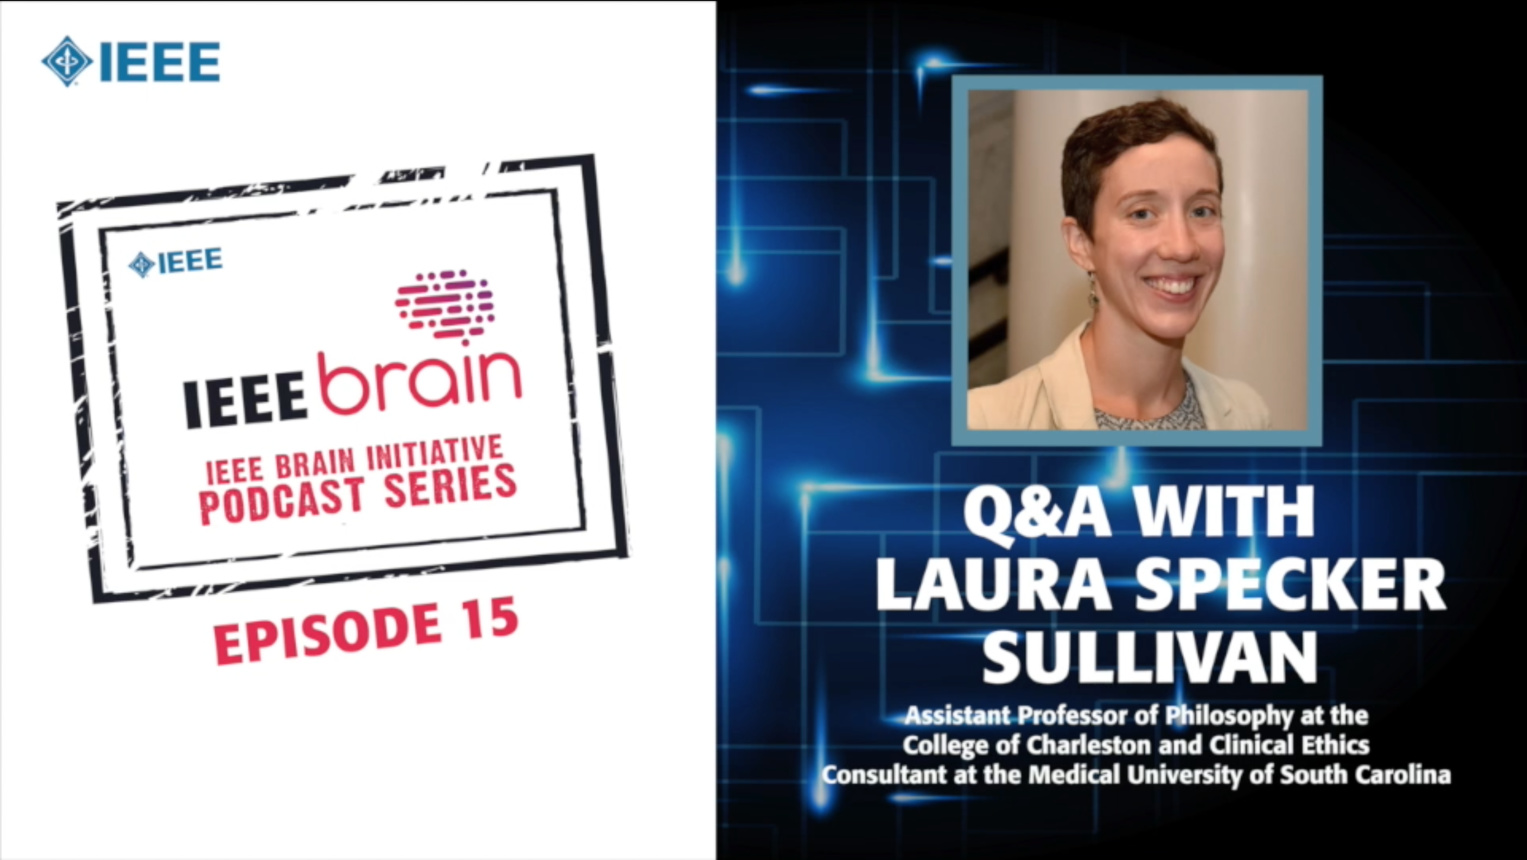 Q&A with Laura Specker Sullivan: IEEE Brain Podcast, Episode 15